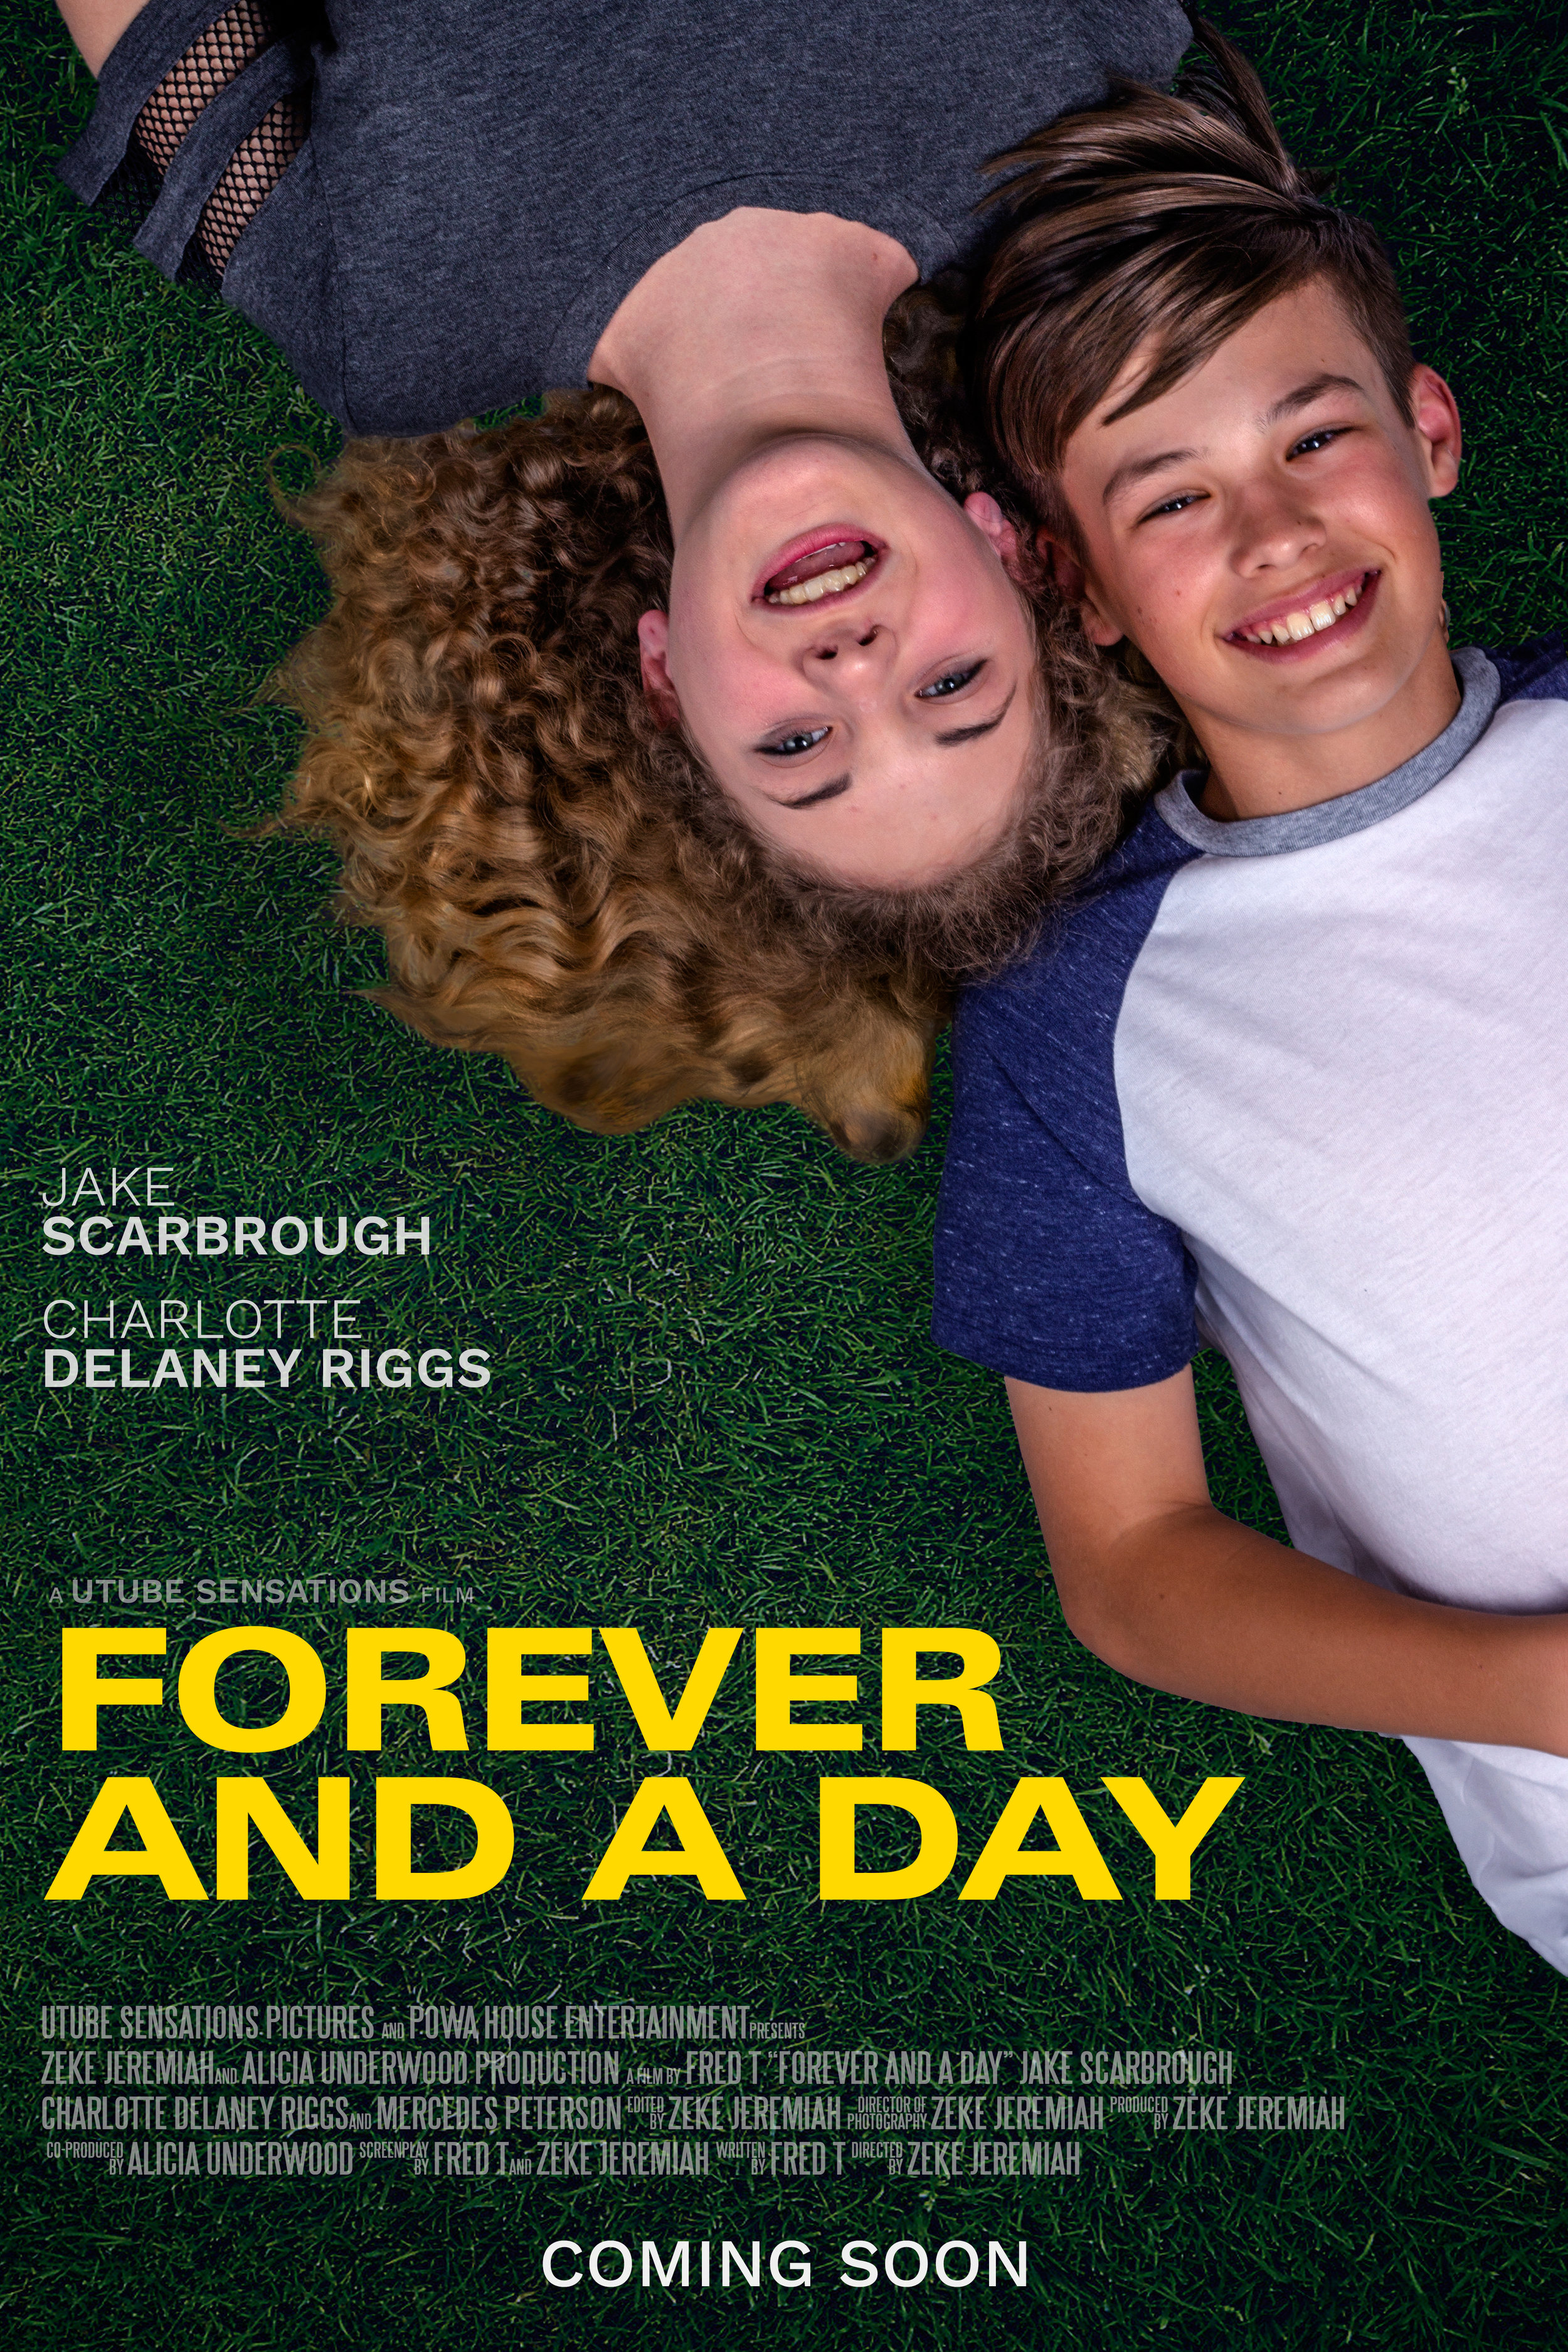 FOREVER AND A DAY POSTER.jpg